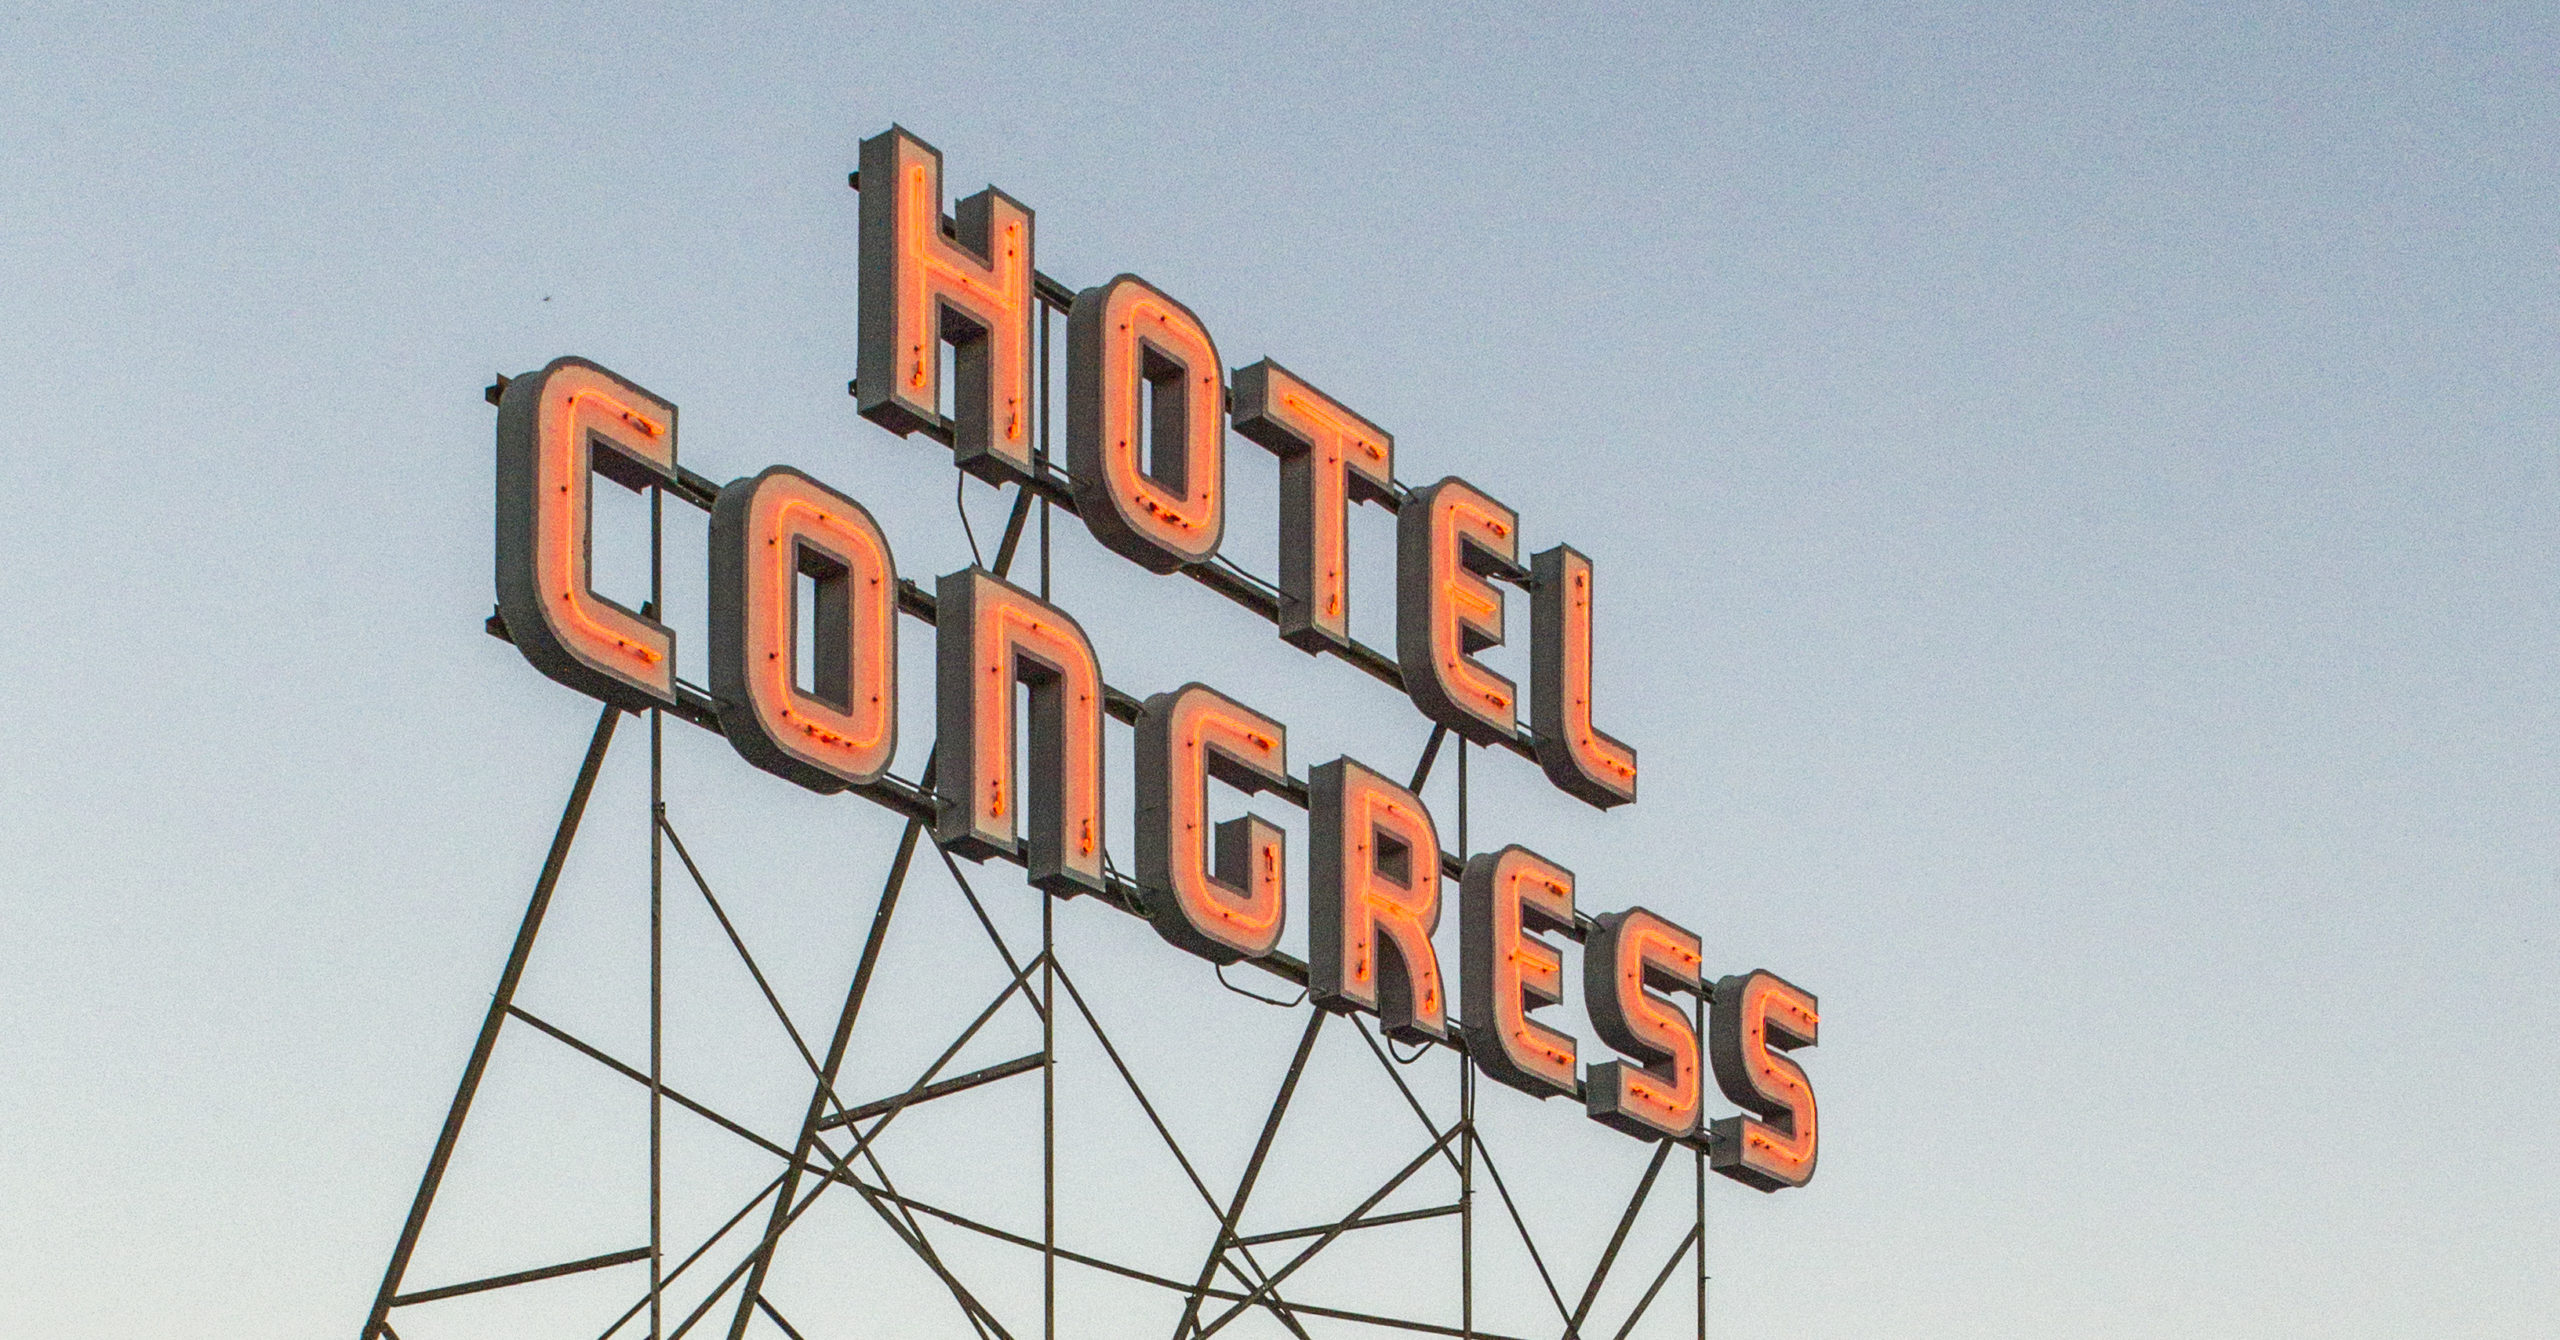 Hotel Congress sign